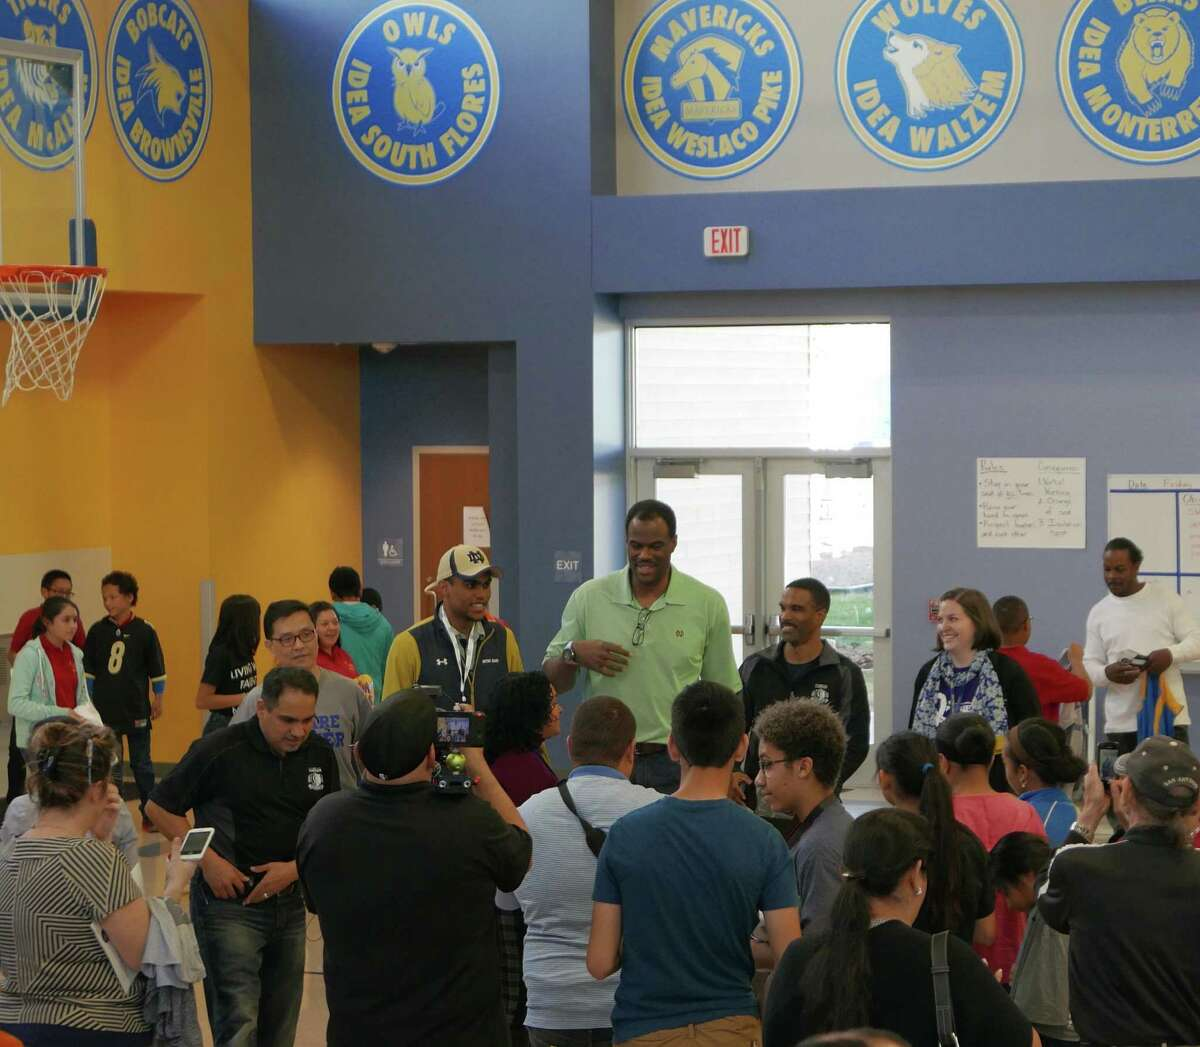 Notre Dame football wide receiver Corey Robinson, wearing baseball cap, and his father, former San Antonio Spurs player David Robinson, middle, converse with students at IDEA Carver on Saturday, Jan. 16, 2016, where they and college student athletes encouraged students and distributed T-shirts with logos of various universities through the One Shirt, One Body initiative. The One Shirt, One Body program was created by Corey Robinson and Andrew Helmin, a former Notre Dame track and field athlete, to unite student athletes and schools by donating excess college gear where there is a need. Over 1,000 university tees were given at four San Antonio area IDEA Public Schools.